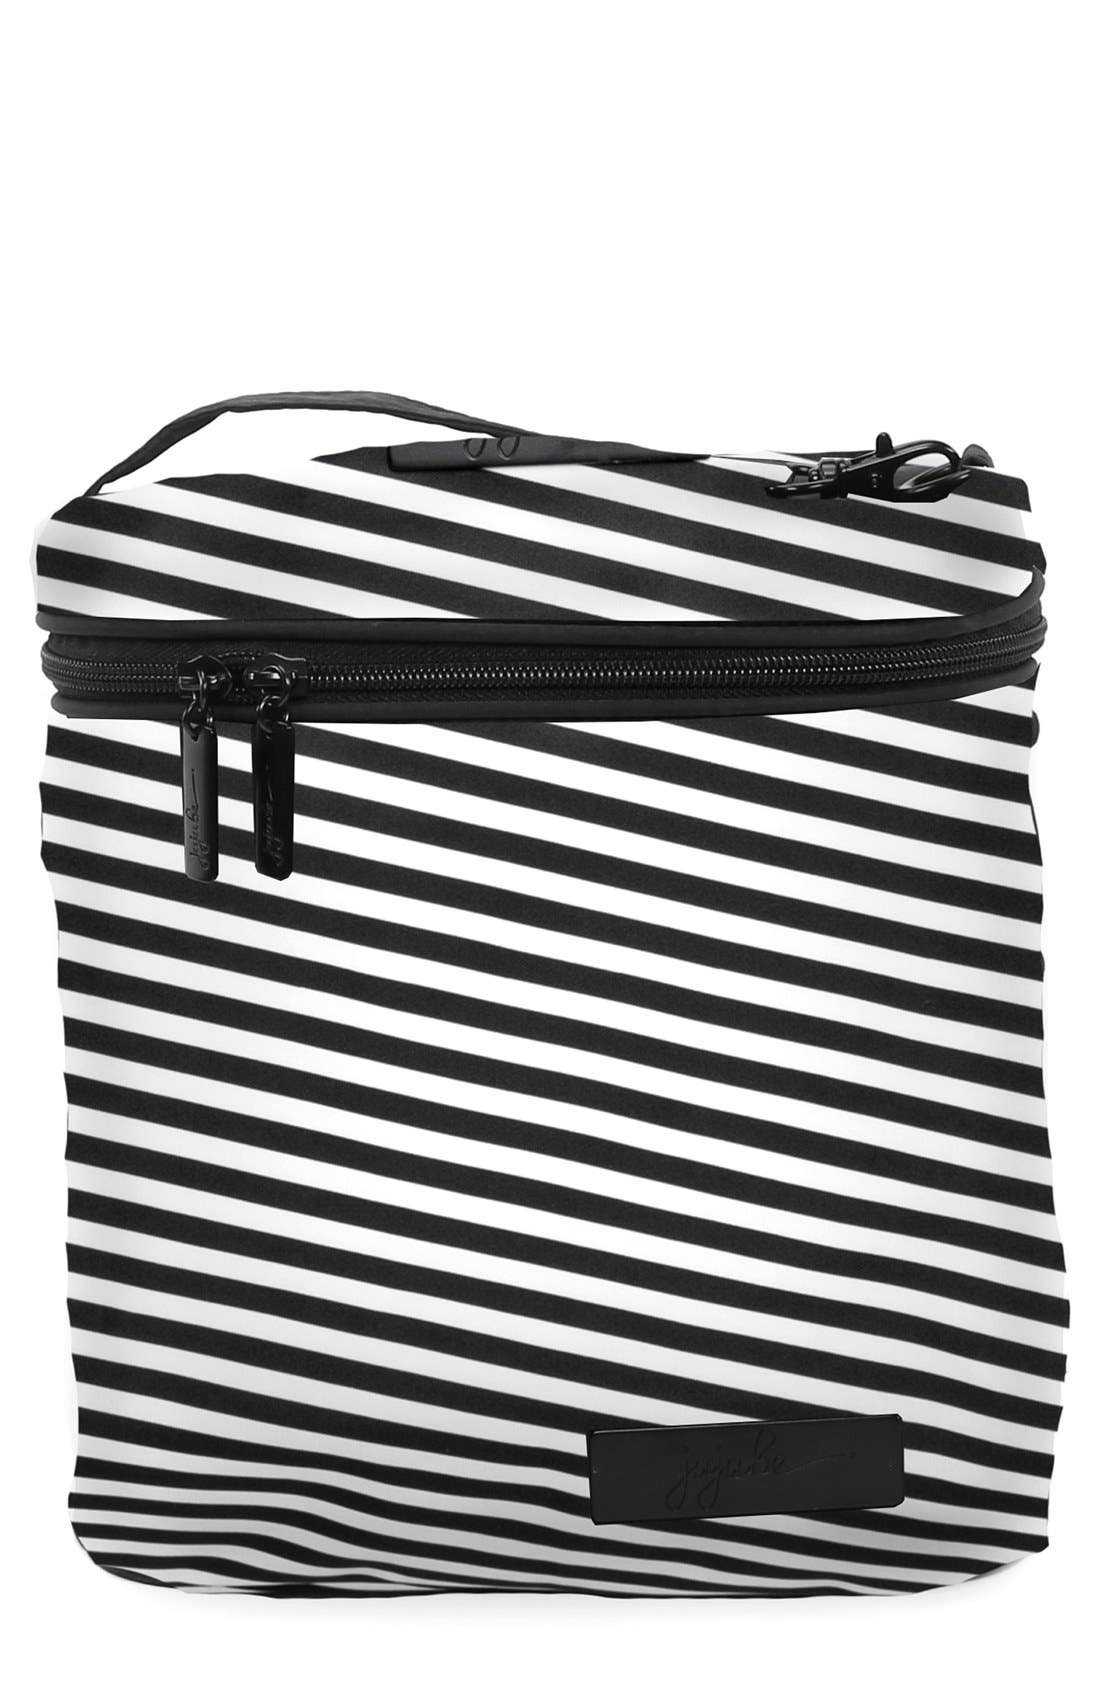 Alternate Image 1 Selected - Ju-Ju-Be 'Fuel Cell - Onyx Collection' Lunch Bag